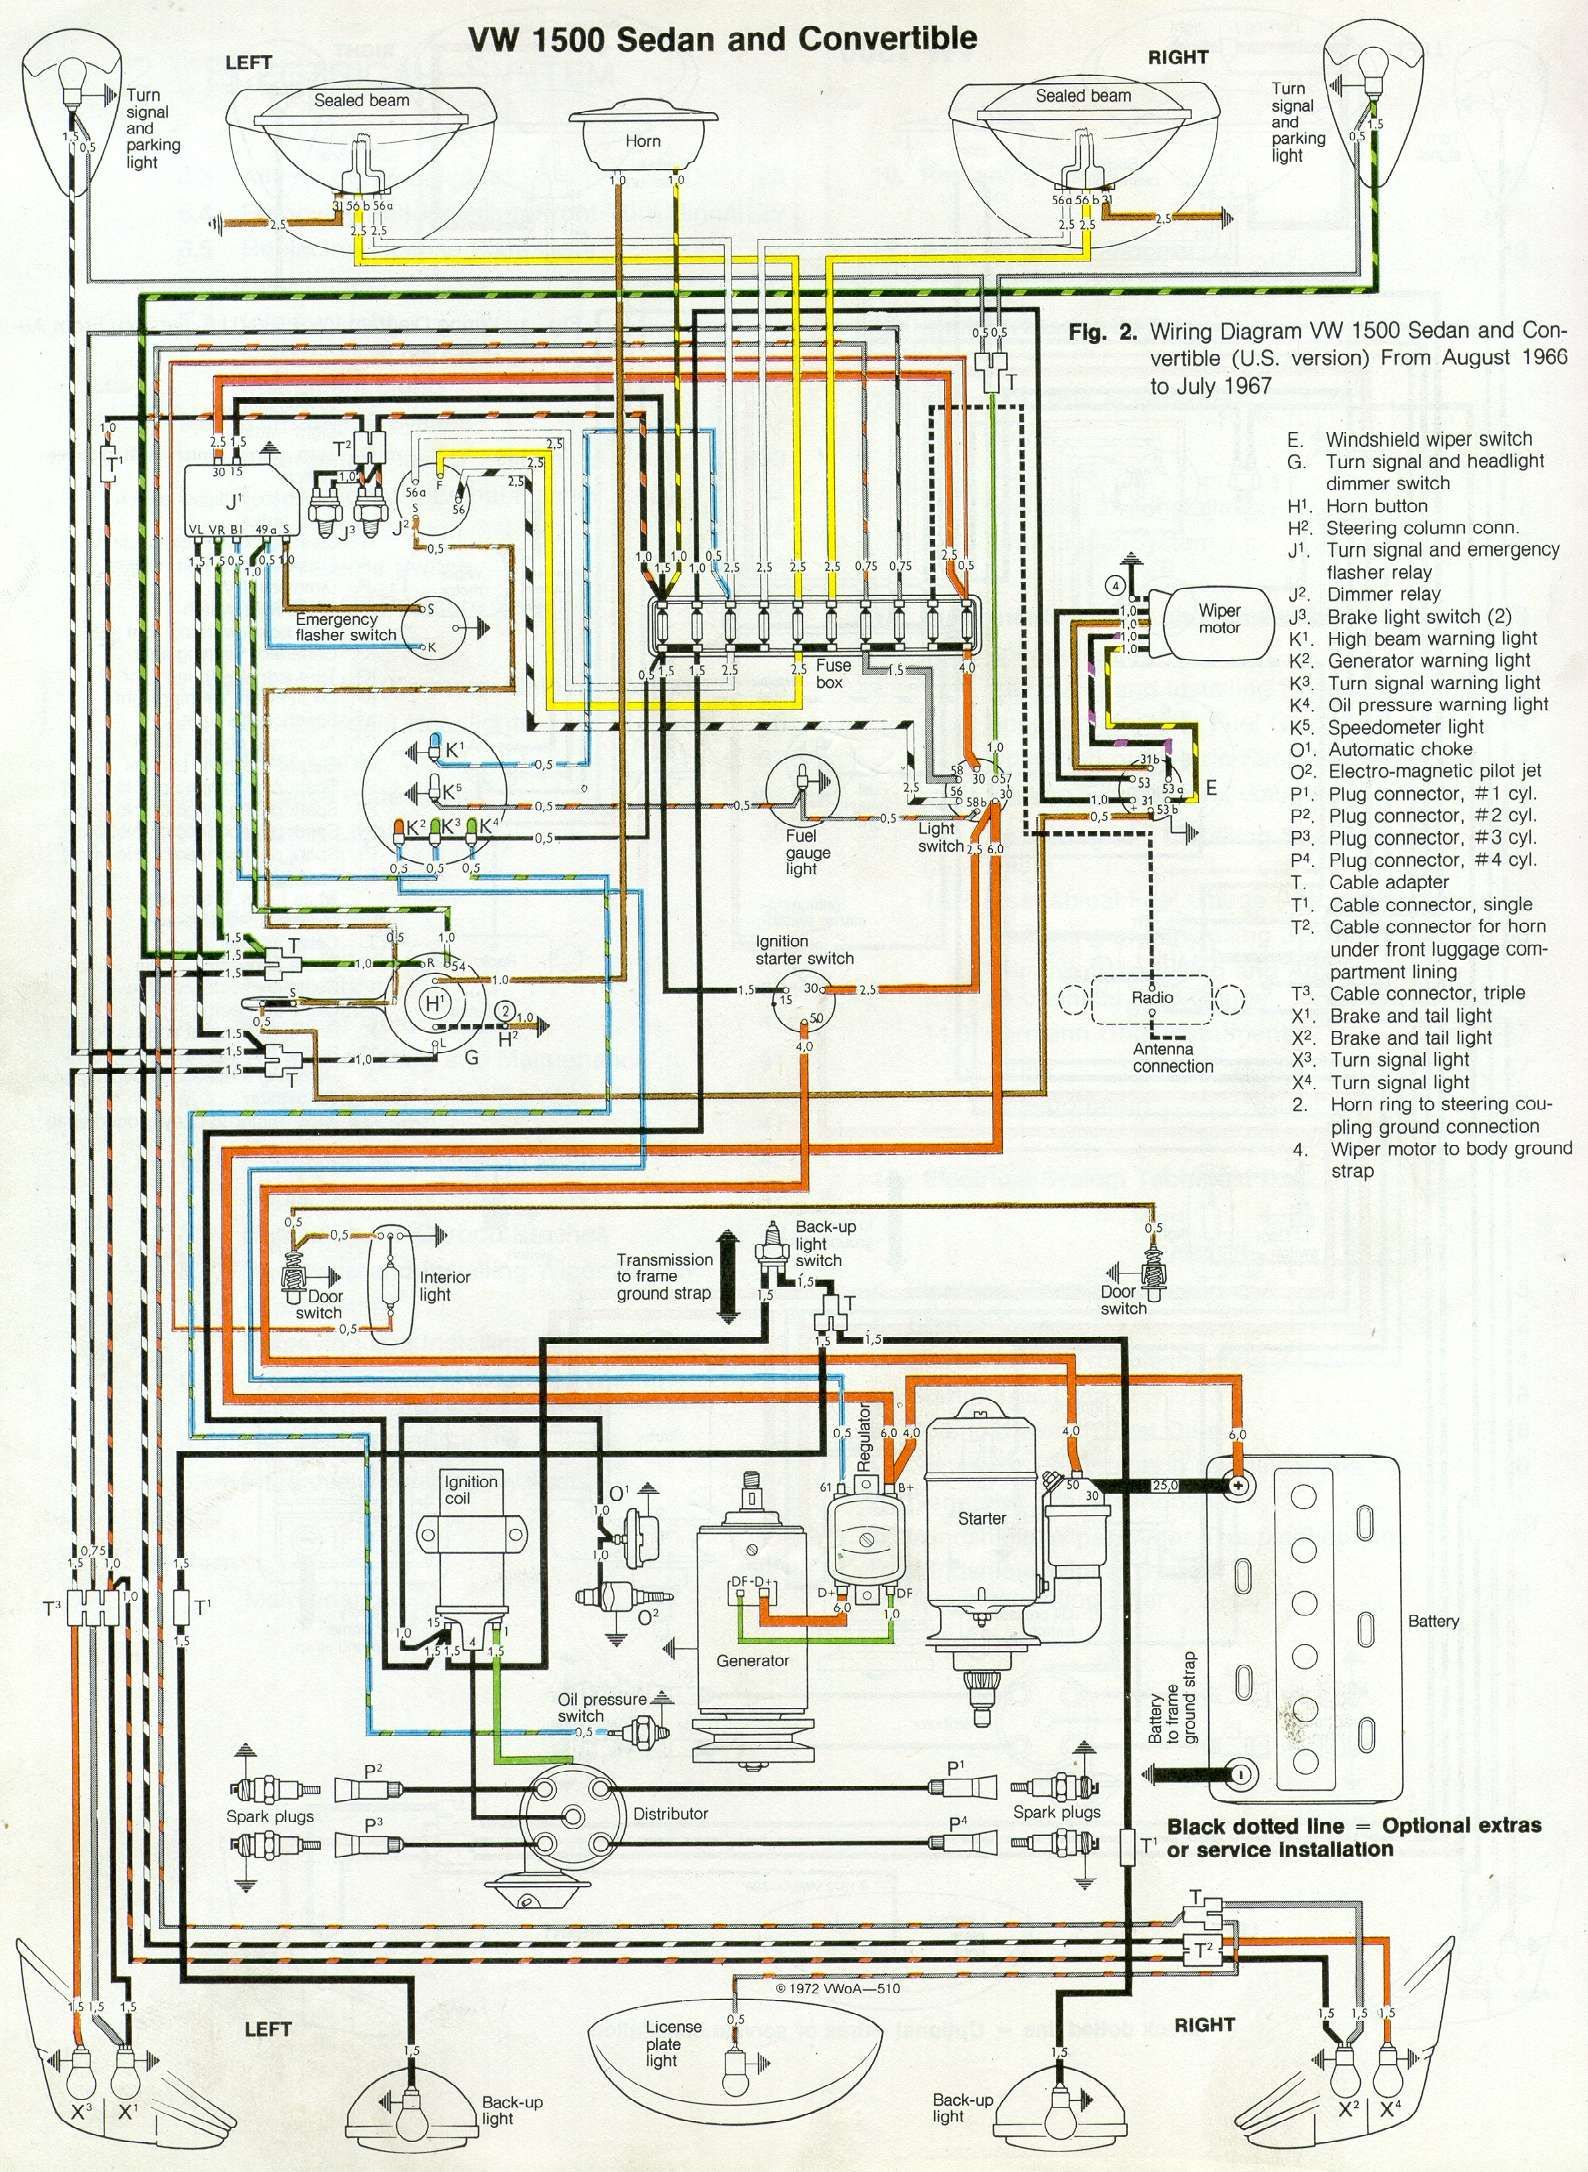 1968 vw wiring schematic wiring diagram fascinating 1968 vw wiring schematic wiring diagrams konsult 1968 vw [ 1588 x 2172 Pixel ]